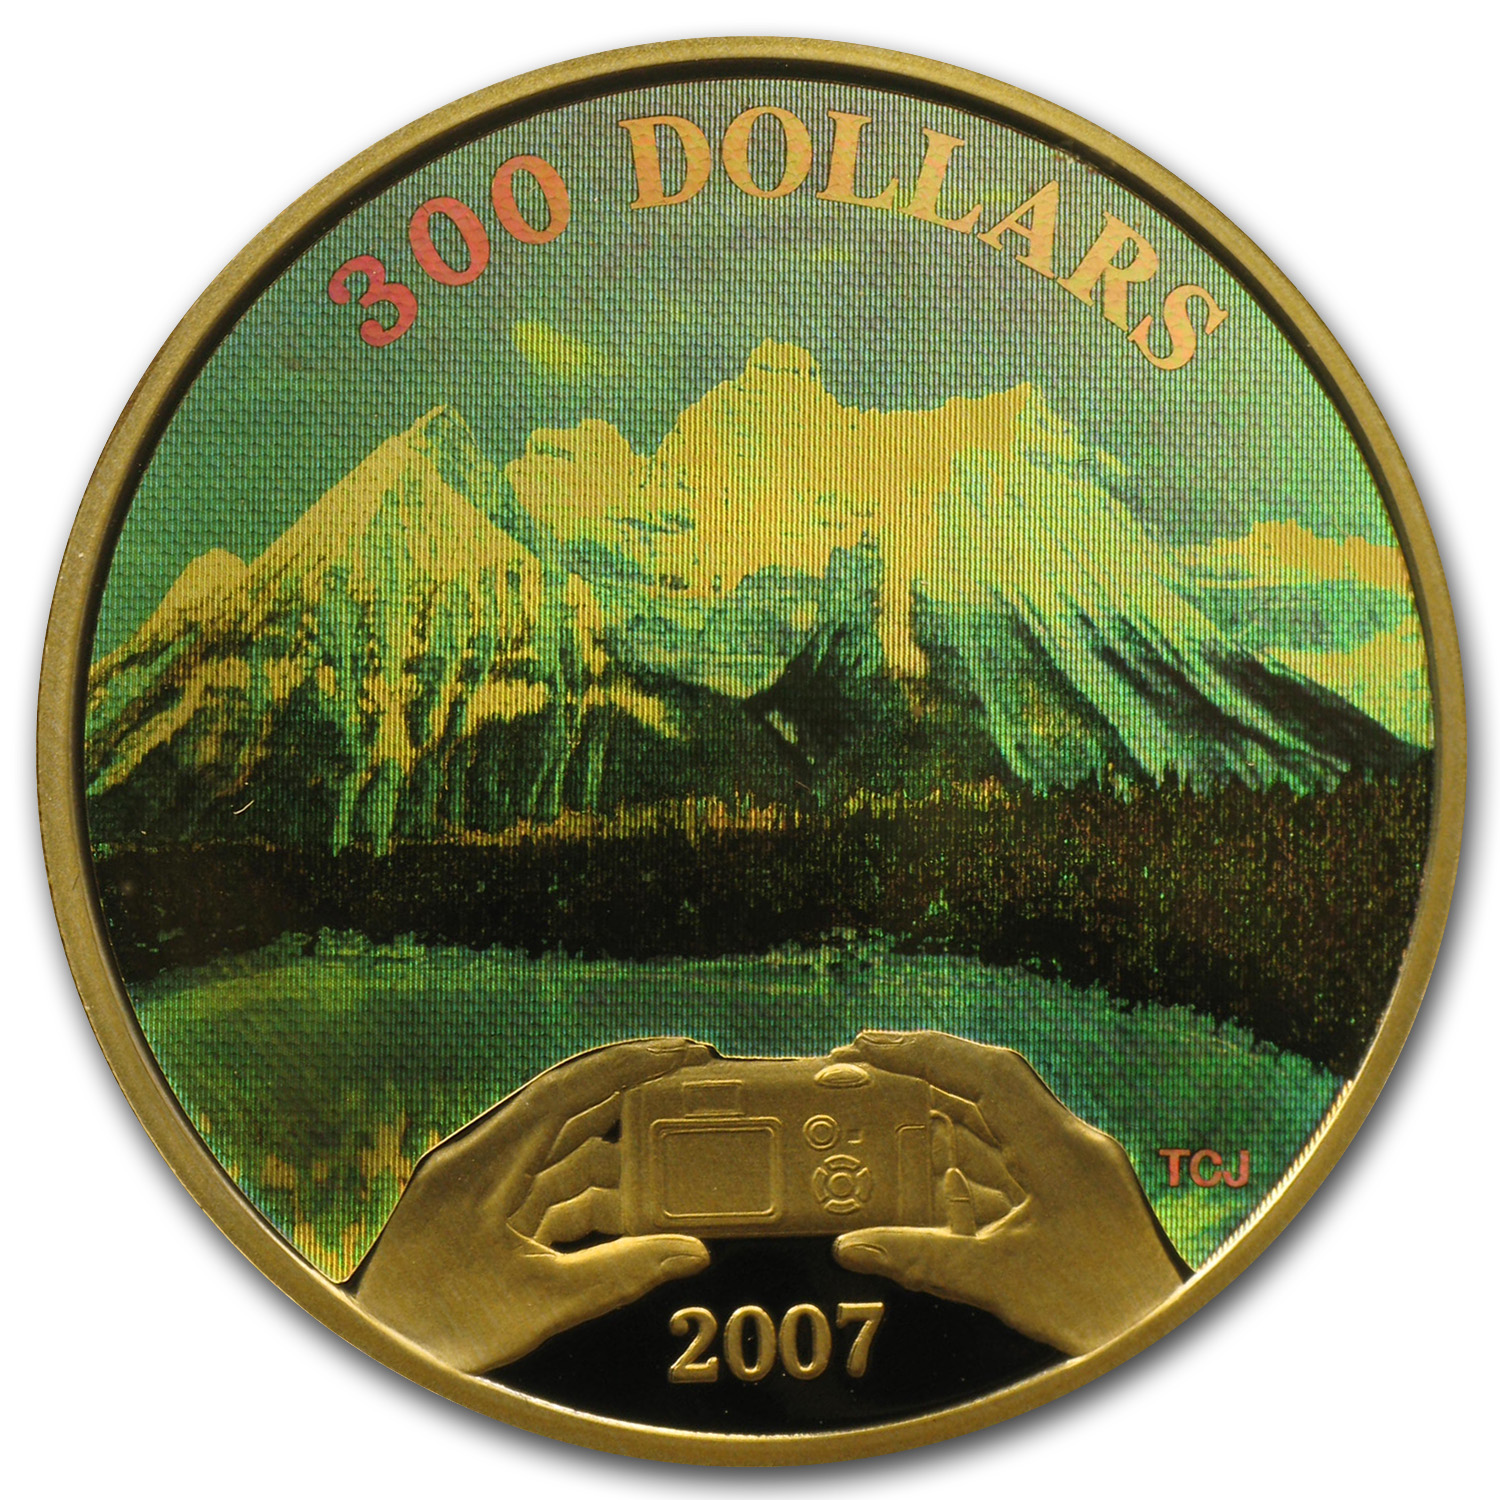 2007 Prf Gold Coin Canadian Achievements - Panoramic Photography